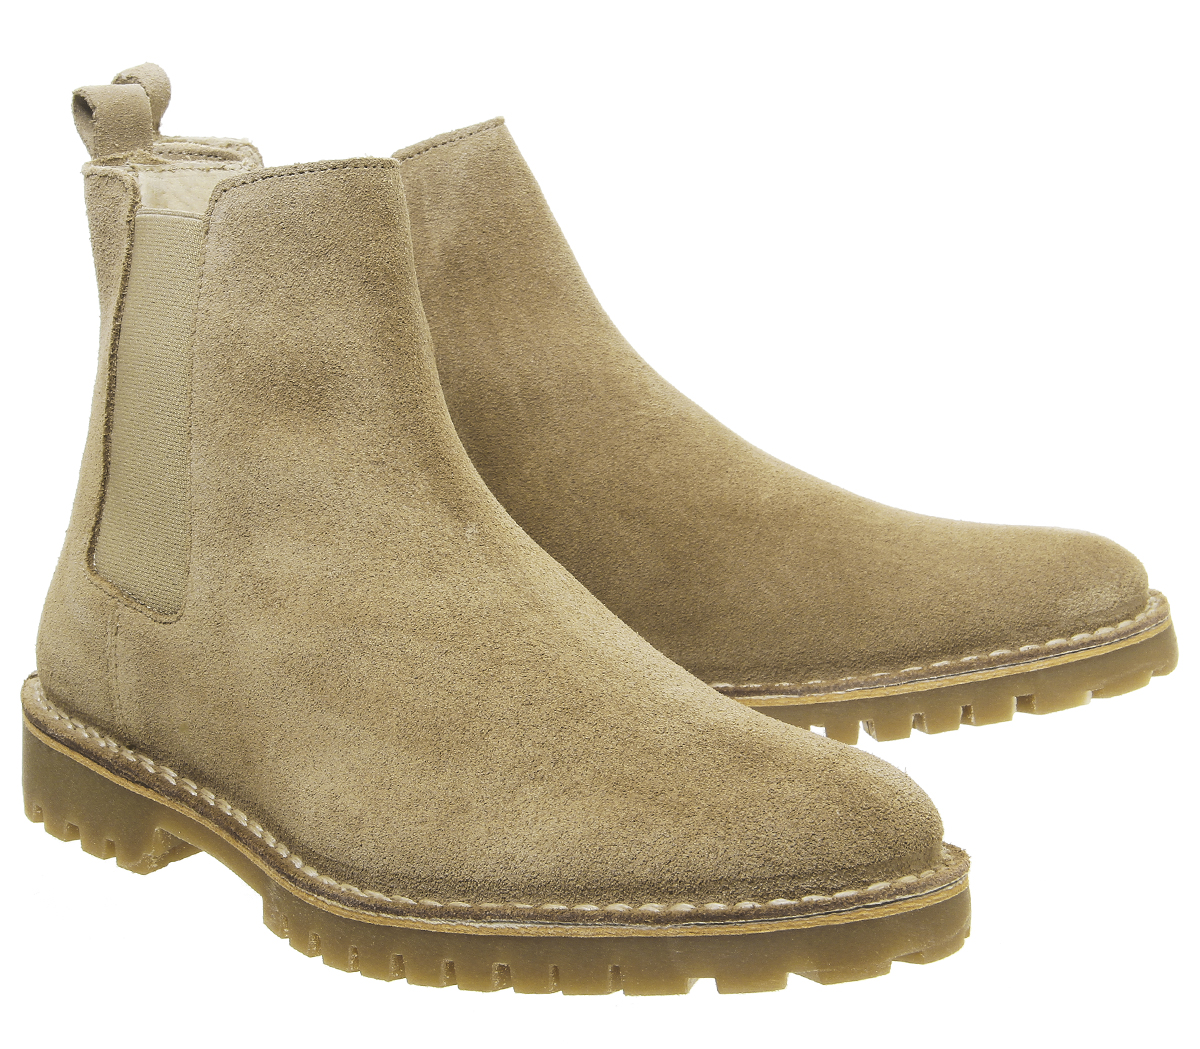 Mens-Office-Impala-Chelsea-Boots-Beige-Suede-Boots thumbnail 13